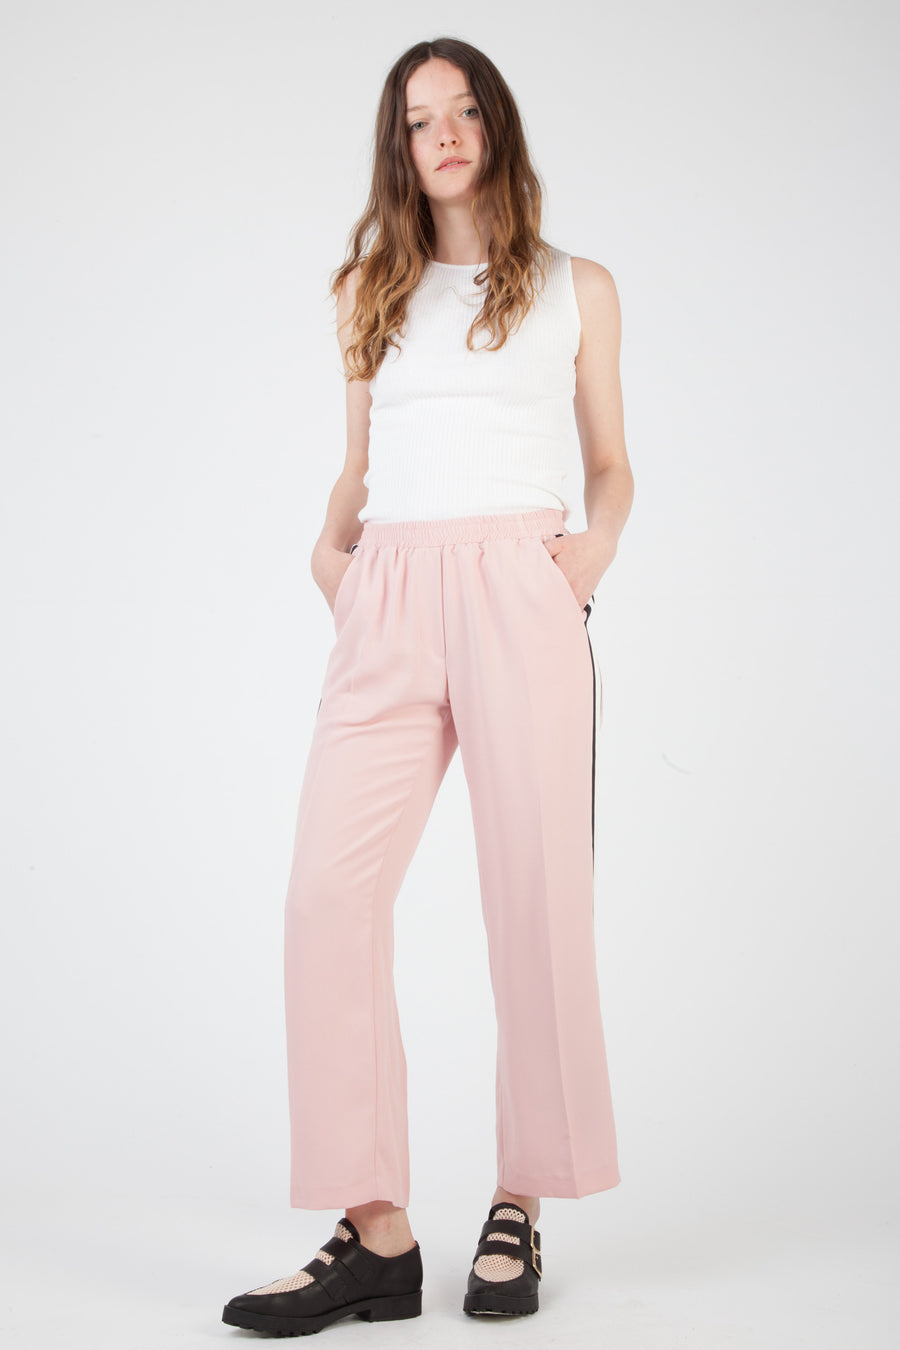 side striped pink pants